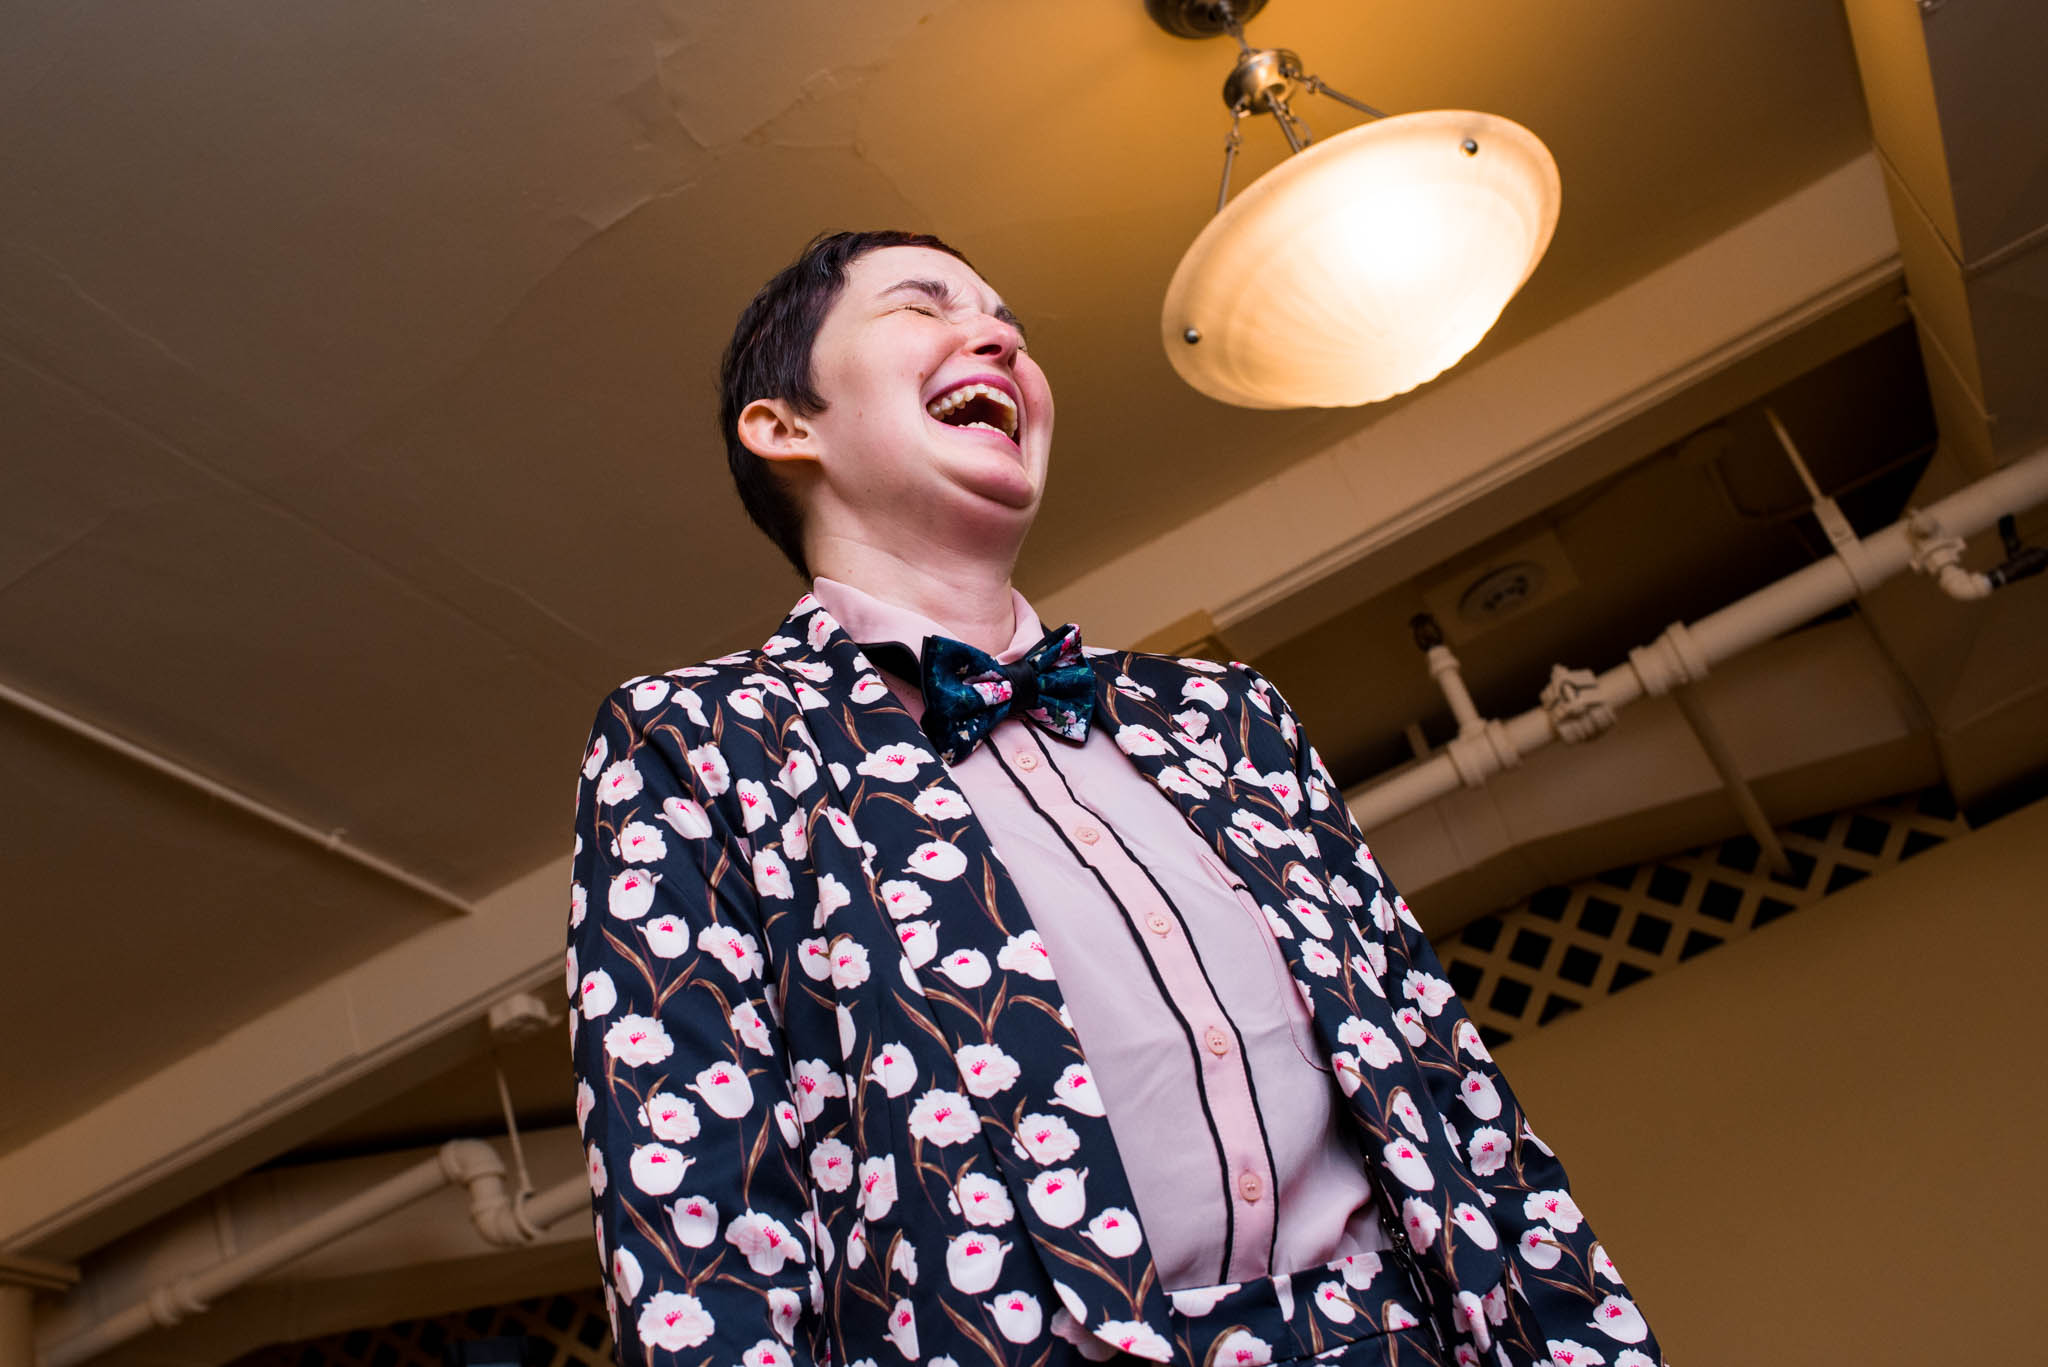 Woman laughing wearing flower suit